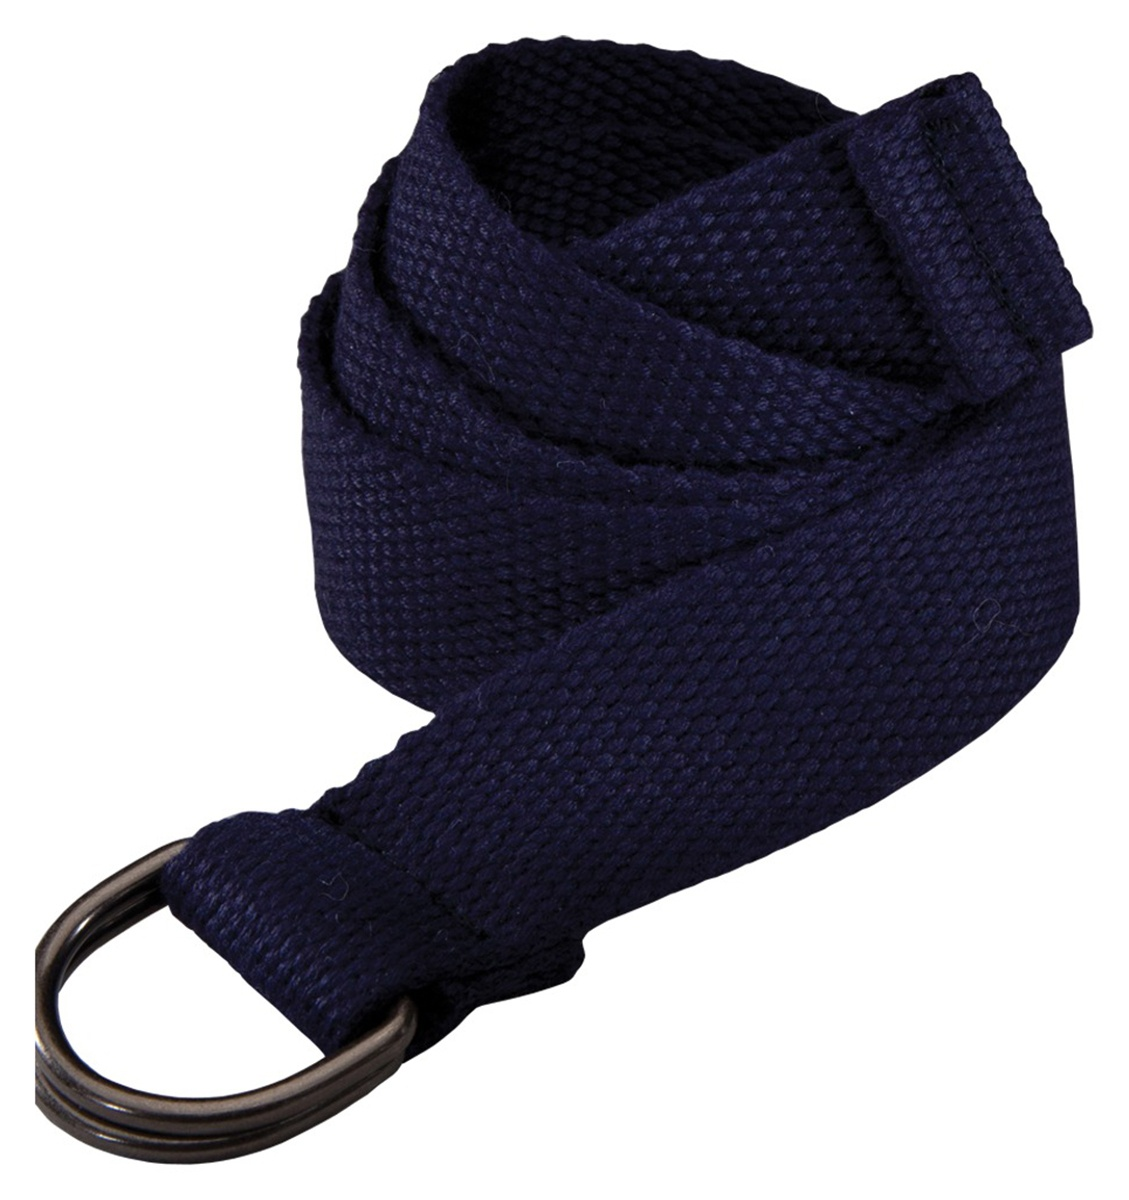 'Edwards WD00 D-Ring Web Belt'